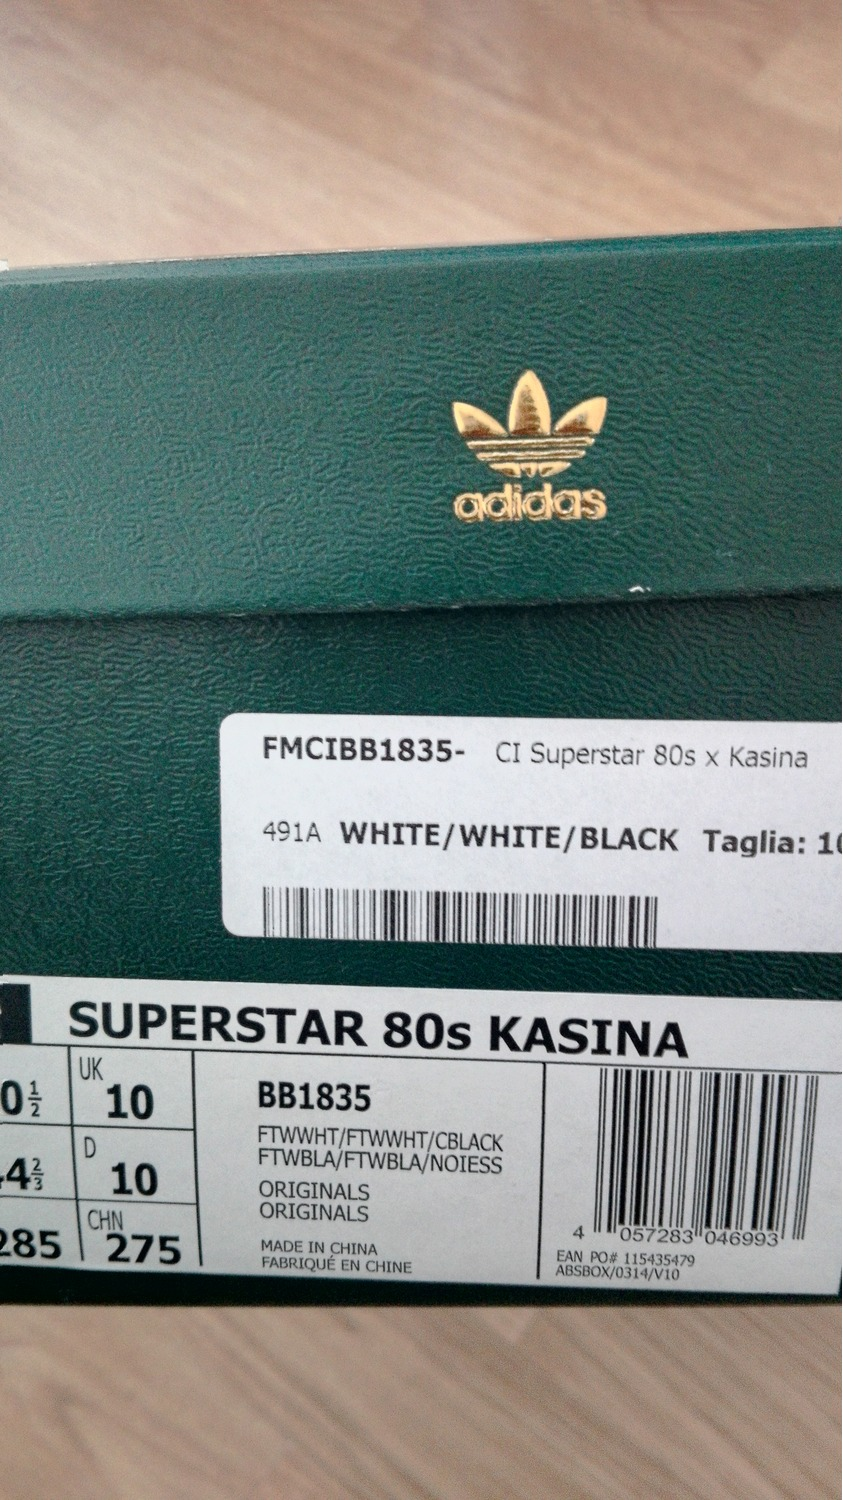 Kasina ADIDAS SUPERSTAR 80s Shoes Release Date Osloveien Bil